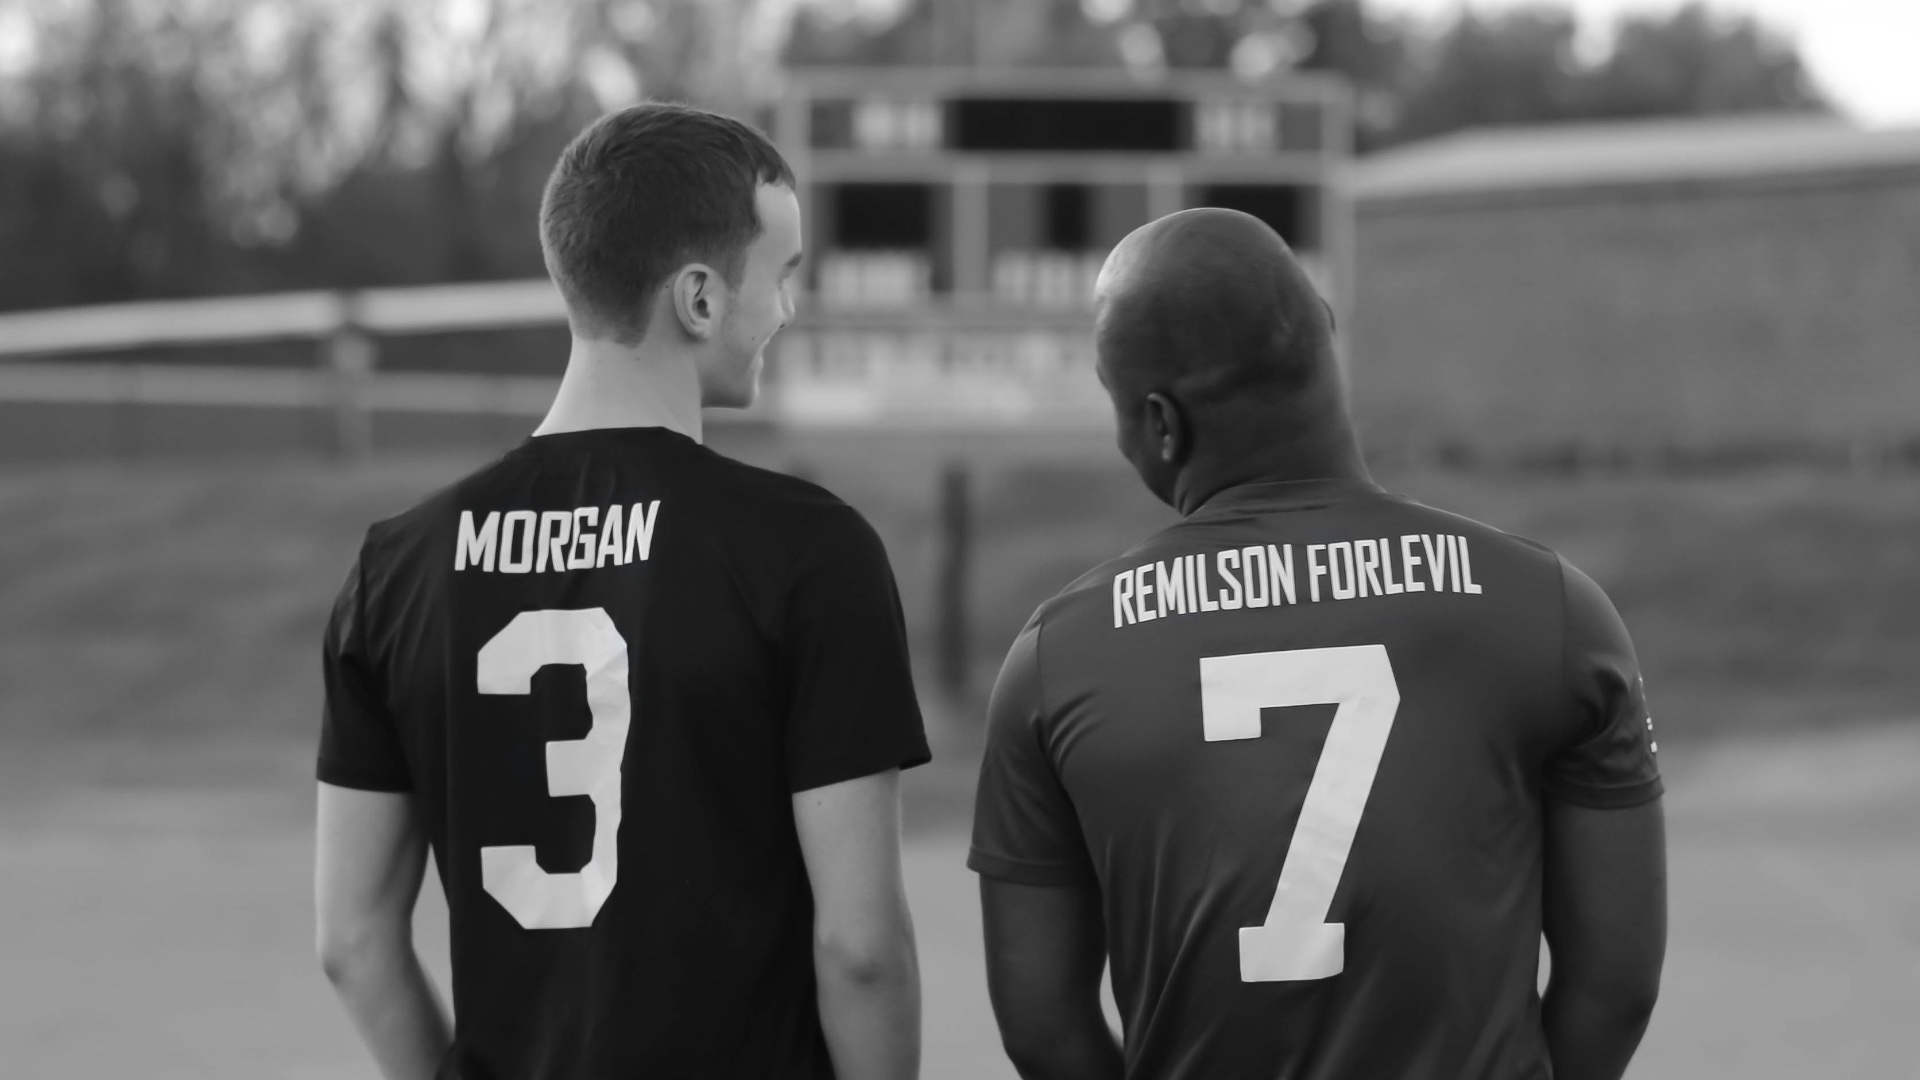 A black and white photo of Zach and Remilson, smiling and talking to each other. Their backs are to the camera and we can see the back of their soccer jerseys, with number three (Zach) and number seven (Remilson).